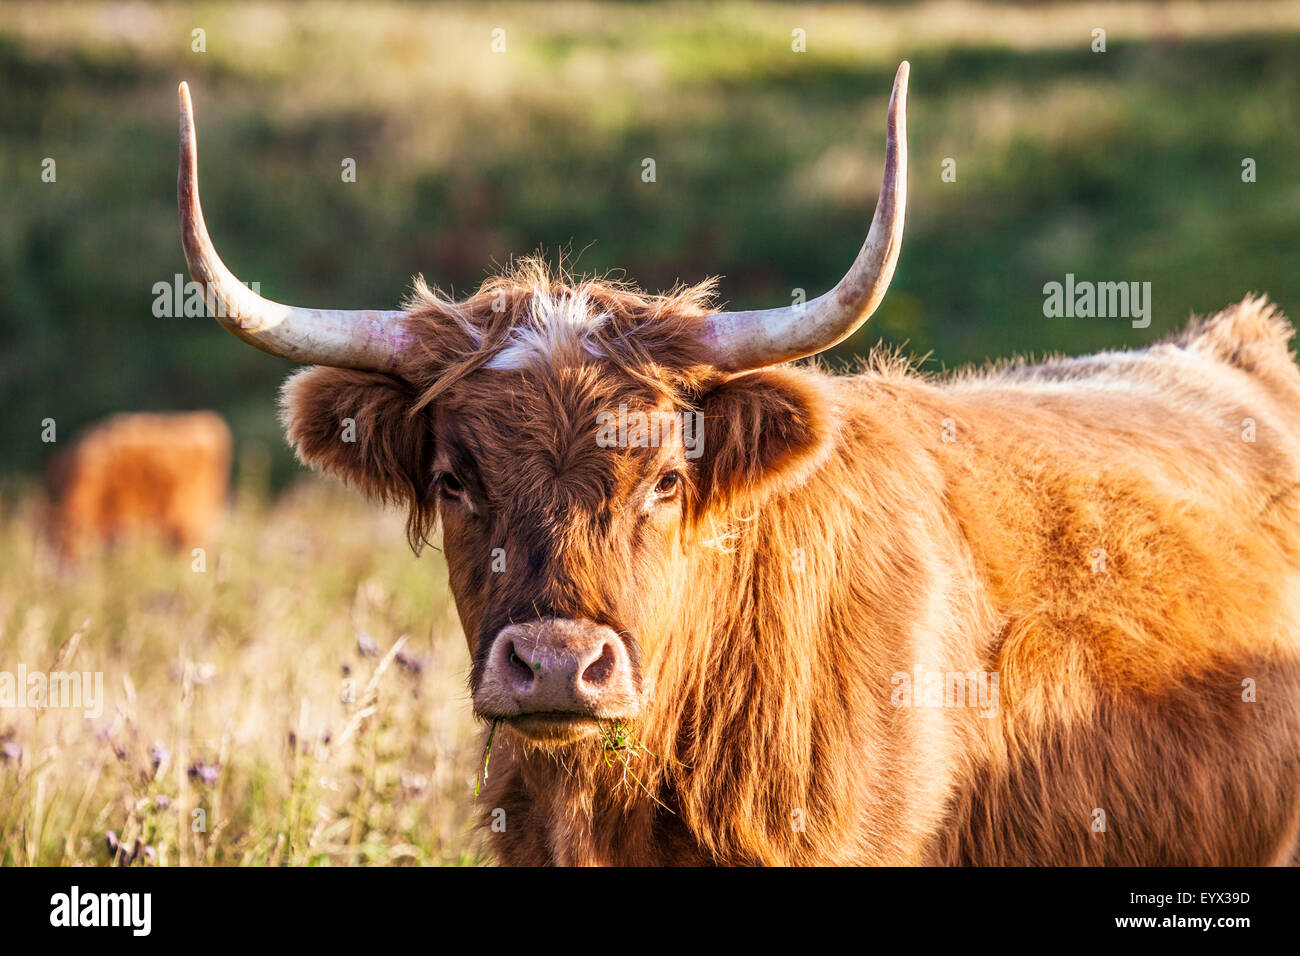 Portrait of a Highland cow, Bos taurus, along the Ridgeway in Wiltshire. - Stock Image